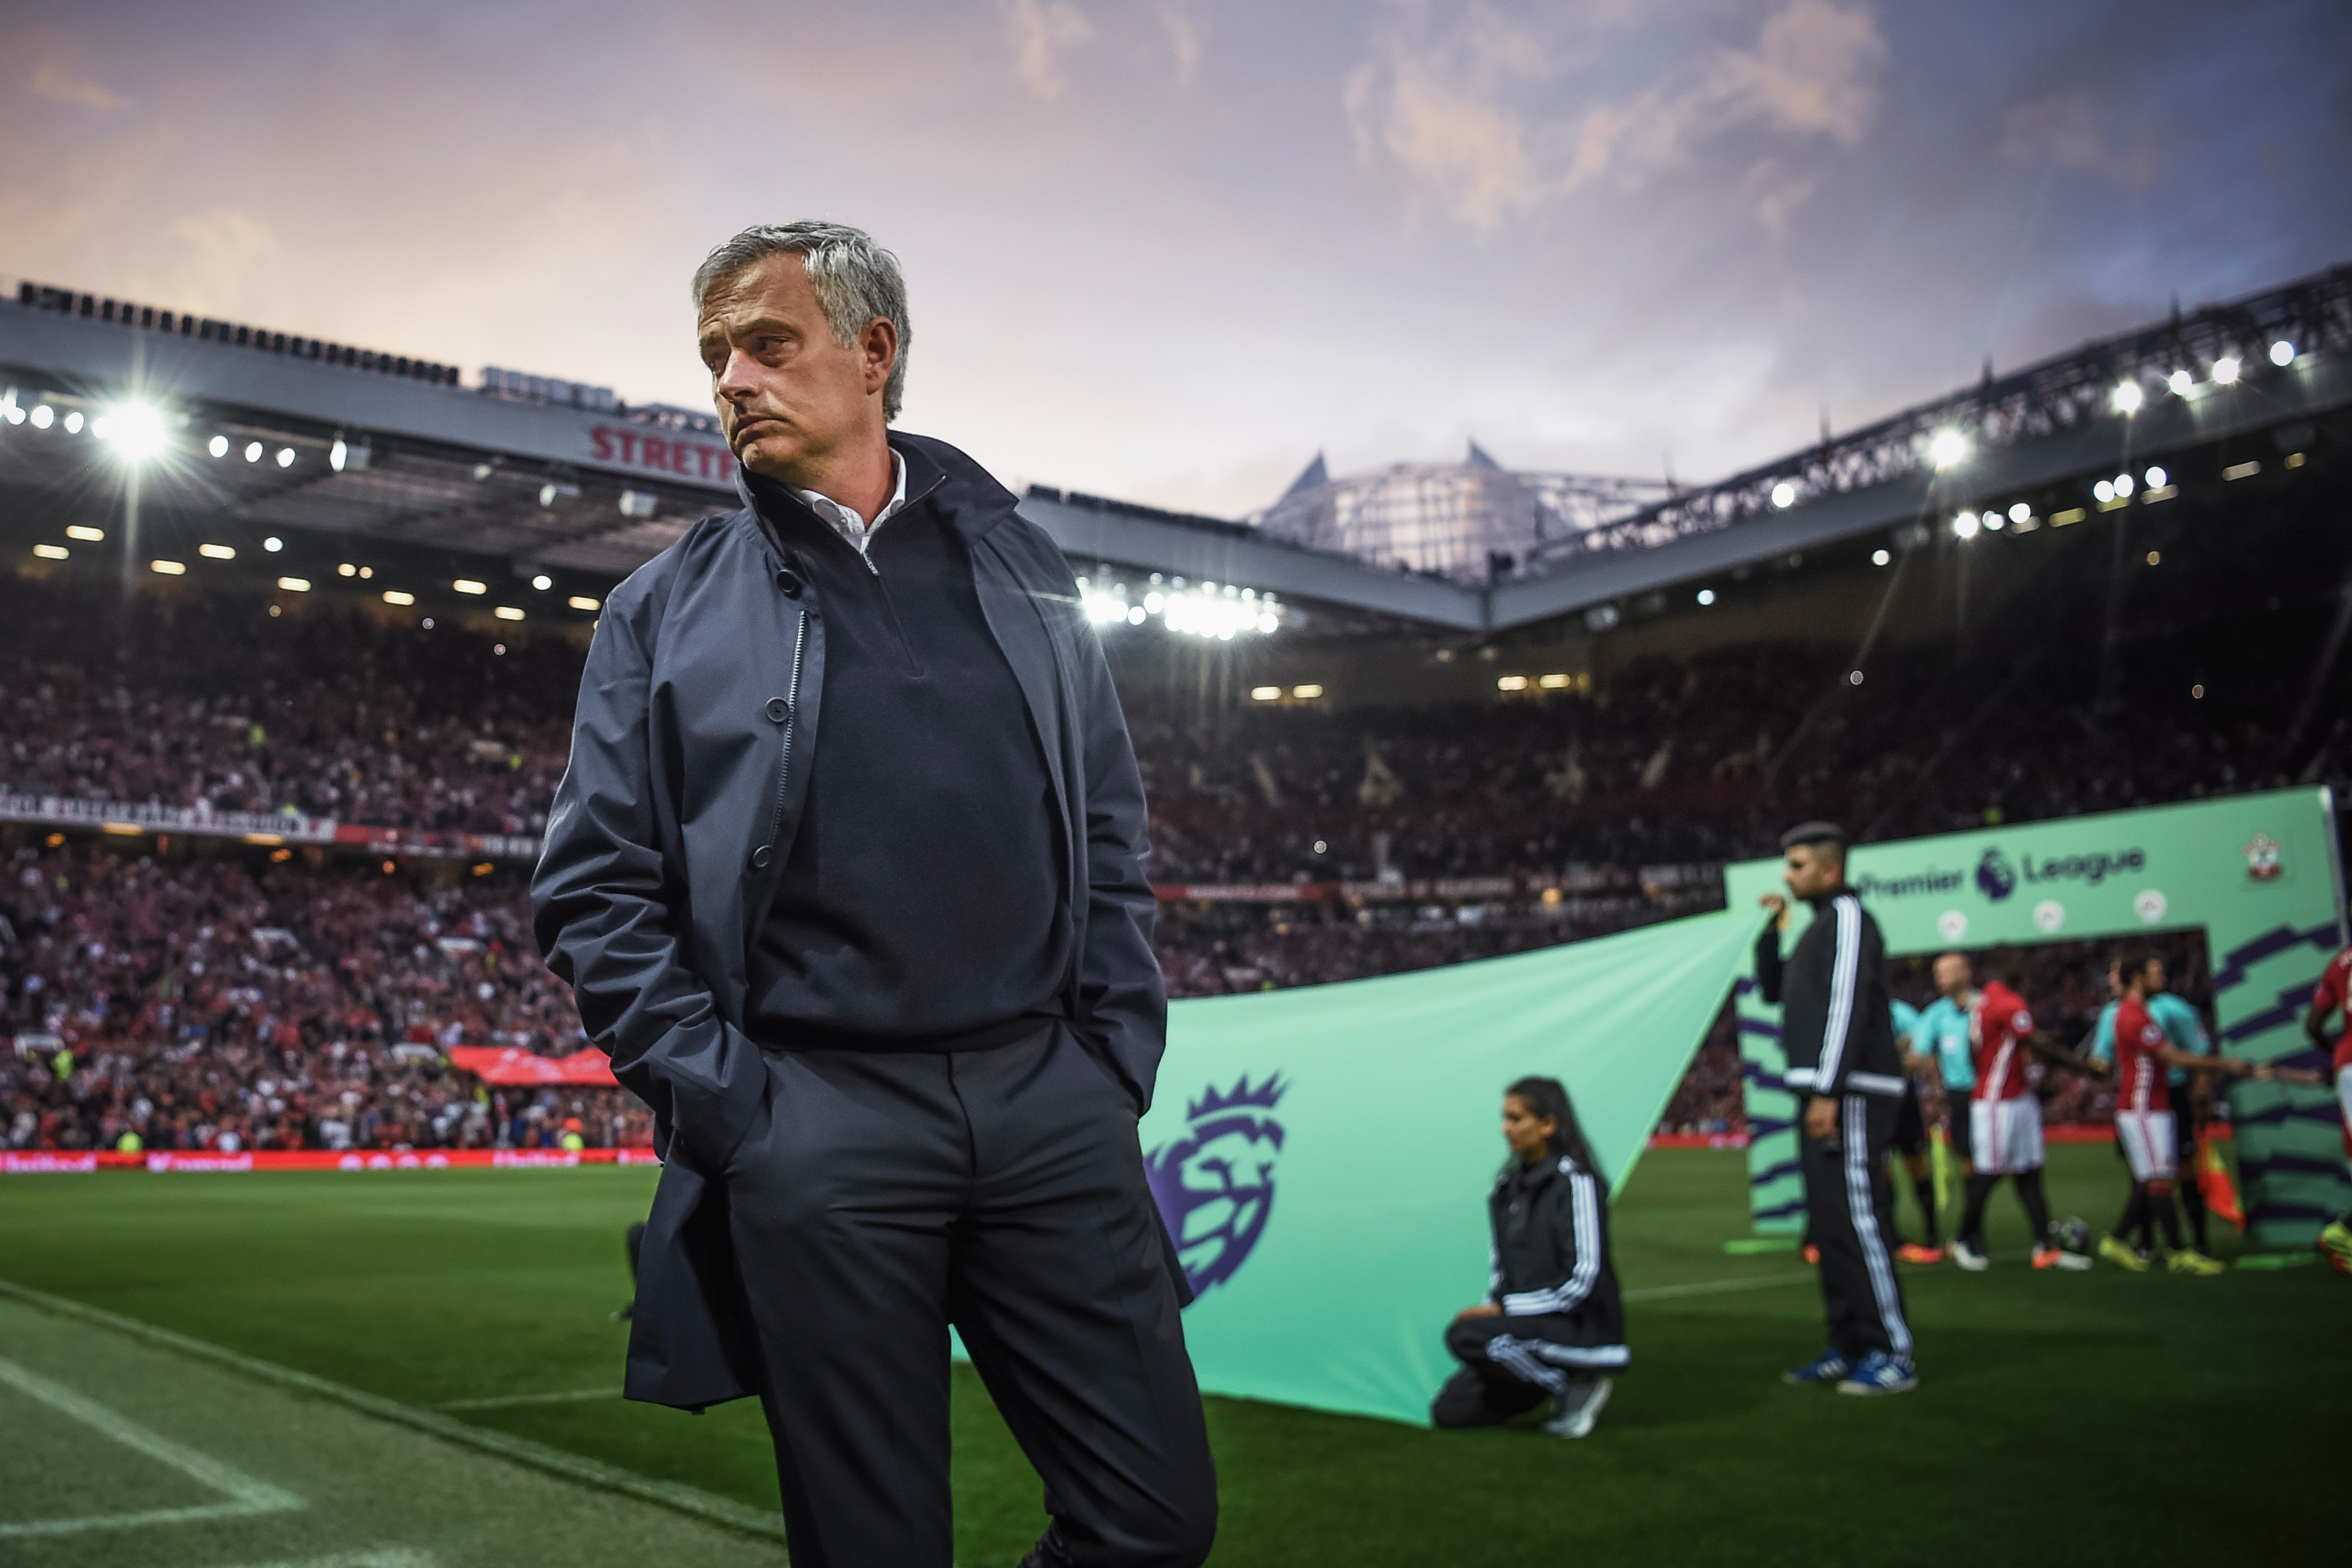 Jose Mourinho tells Manchester United squad to believe they can win the Premier League